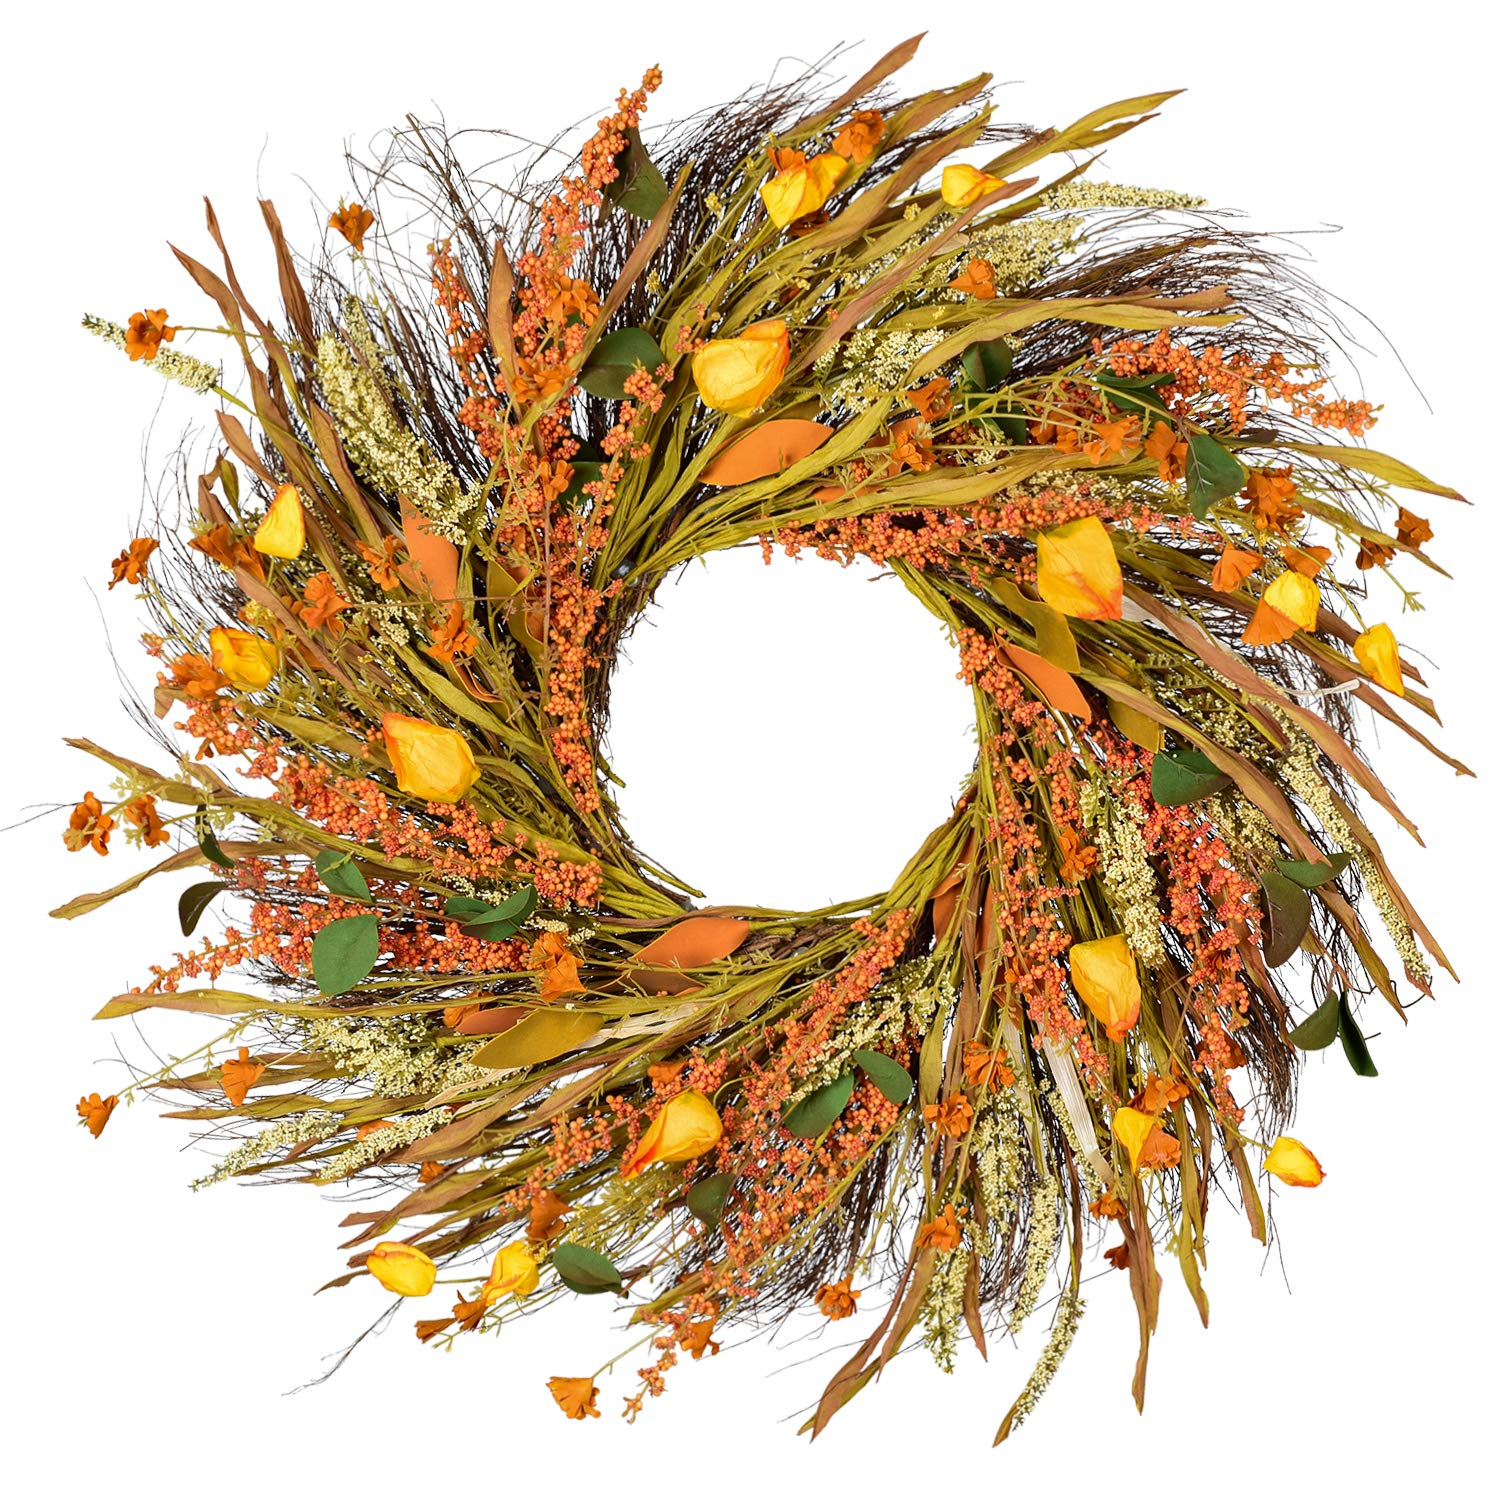 22 inch Fall Wreath Front Door Wreath Grain Wreath Harvest Gold Wheat Ears Circle Garland autumn wreath for Front Door Wedding Wall Home Thanksgiving Decor